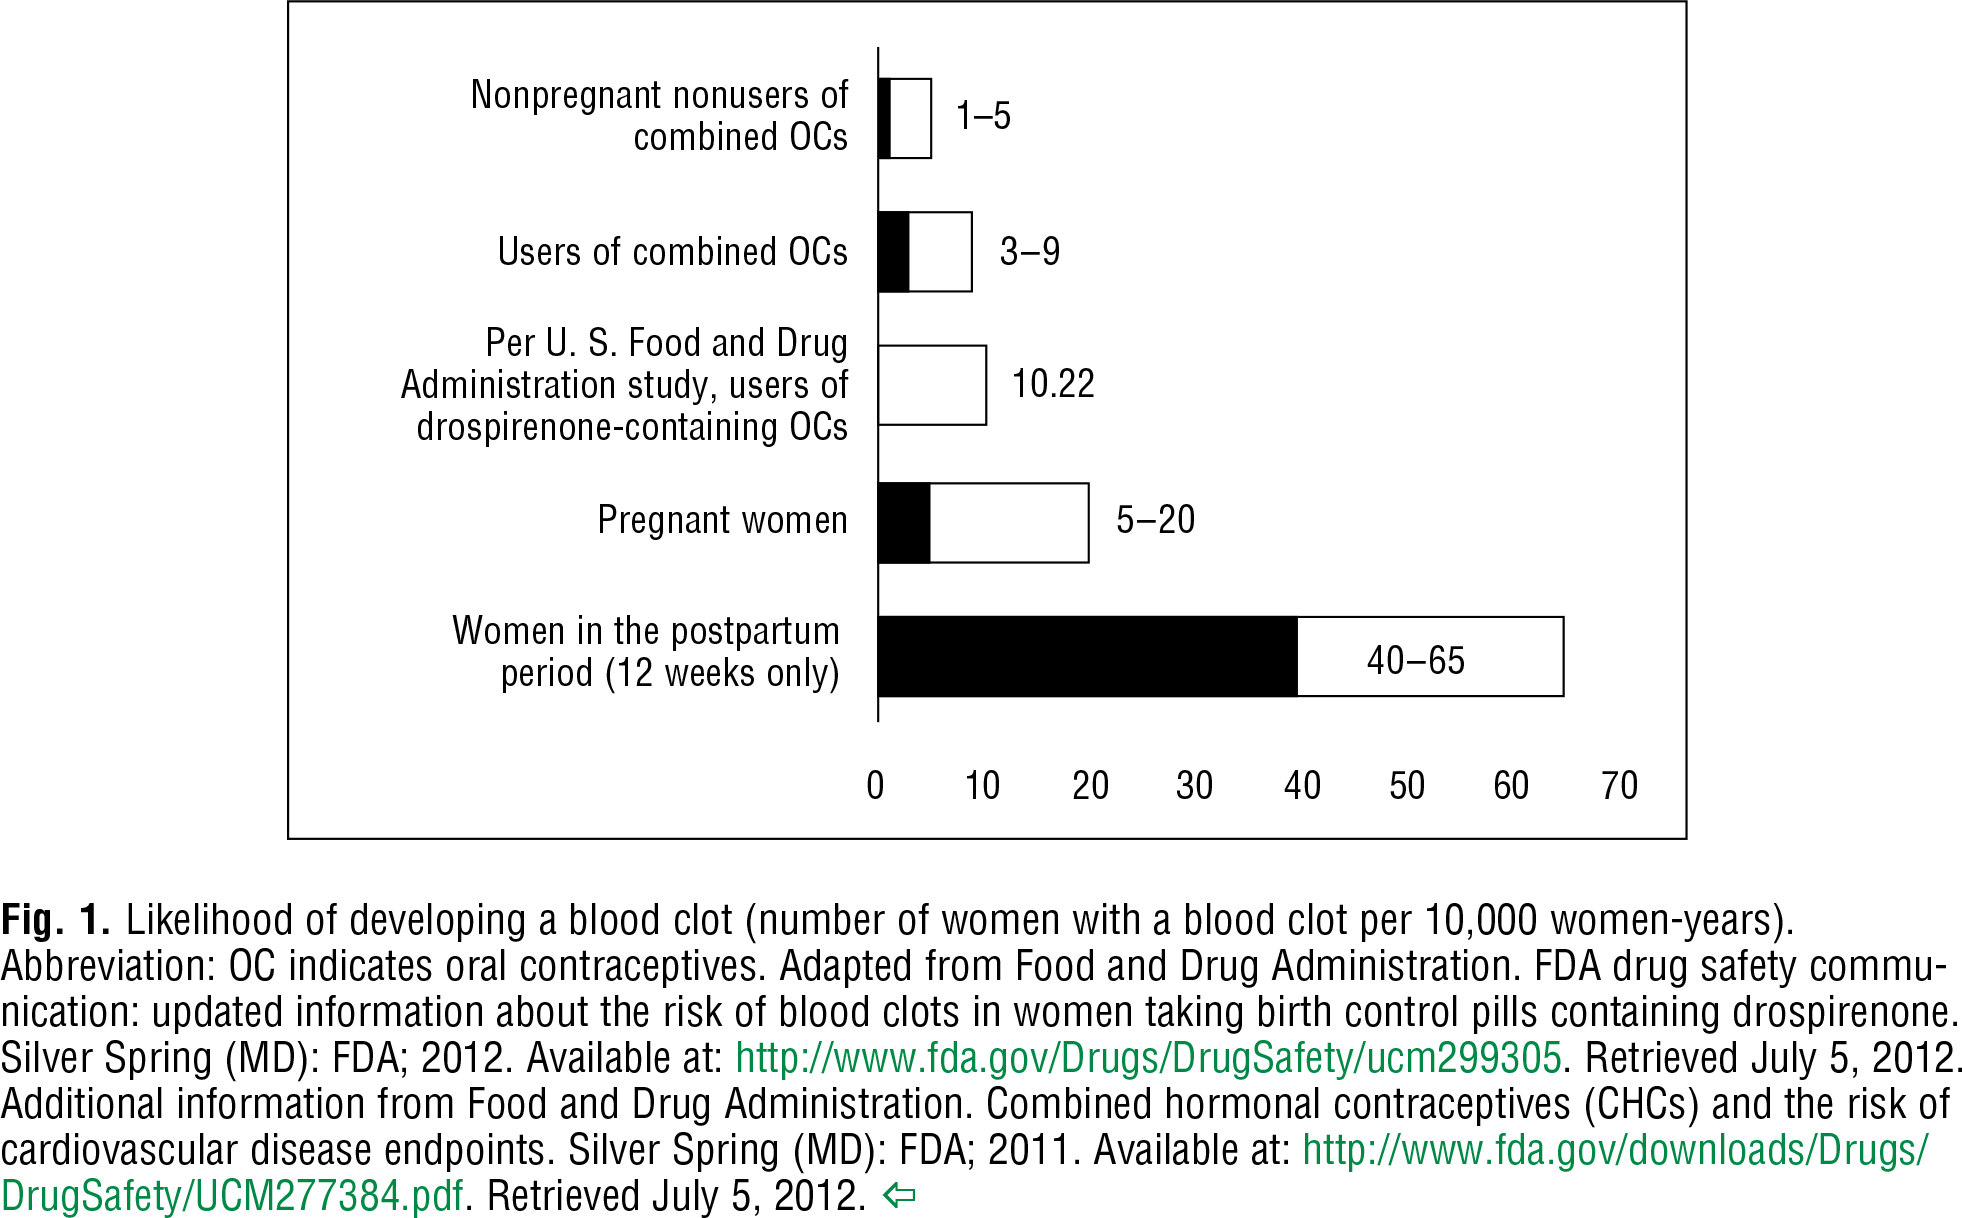 Fig. 1 Likelihood of developing a blood clot (number of women with a blood clot per 10,000 women-years). Abbreviation: OC indicates oral contraceptives. Adapted from Food and Drug Administration. FDA drug safety communication: updated information about the risk of blood clots in women taking birth control pills containing drospirenone. Silver Spring (MD): FDA; 2012. Available at: http://www.fda.gov/Drugs/DrugSafety/ucm299305 . Retrieved July 5, 2012. Additional information from Food and Drug Administration. Combined hormonal contraceptives (CHCs) and the risk of cardiovascular disease endpoints. Silver Spring (MD): FDA; 2011. Available at: http://www.fda.gov/downloads/Drugs/DrugSafety/UCM277384.pdf . Retrieved July 5, 2012.